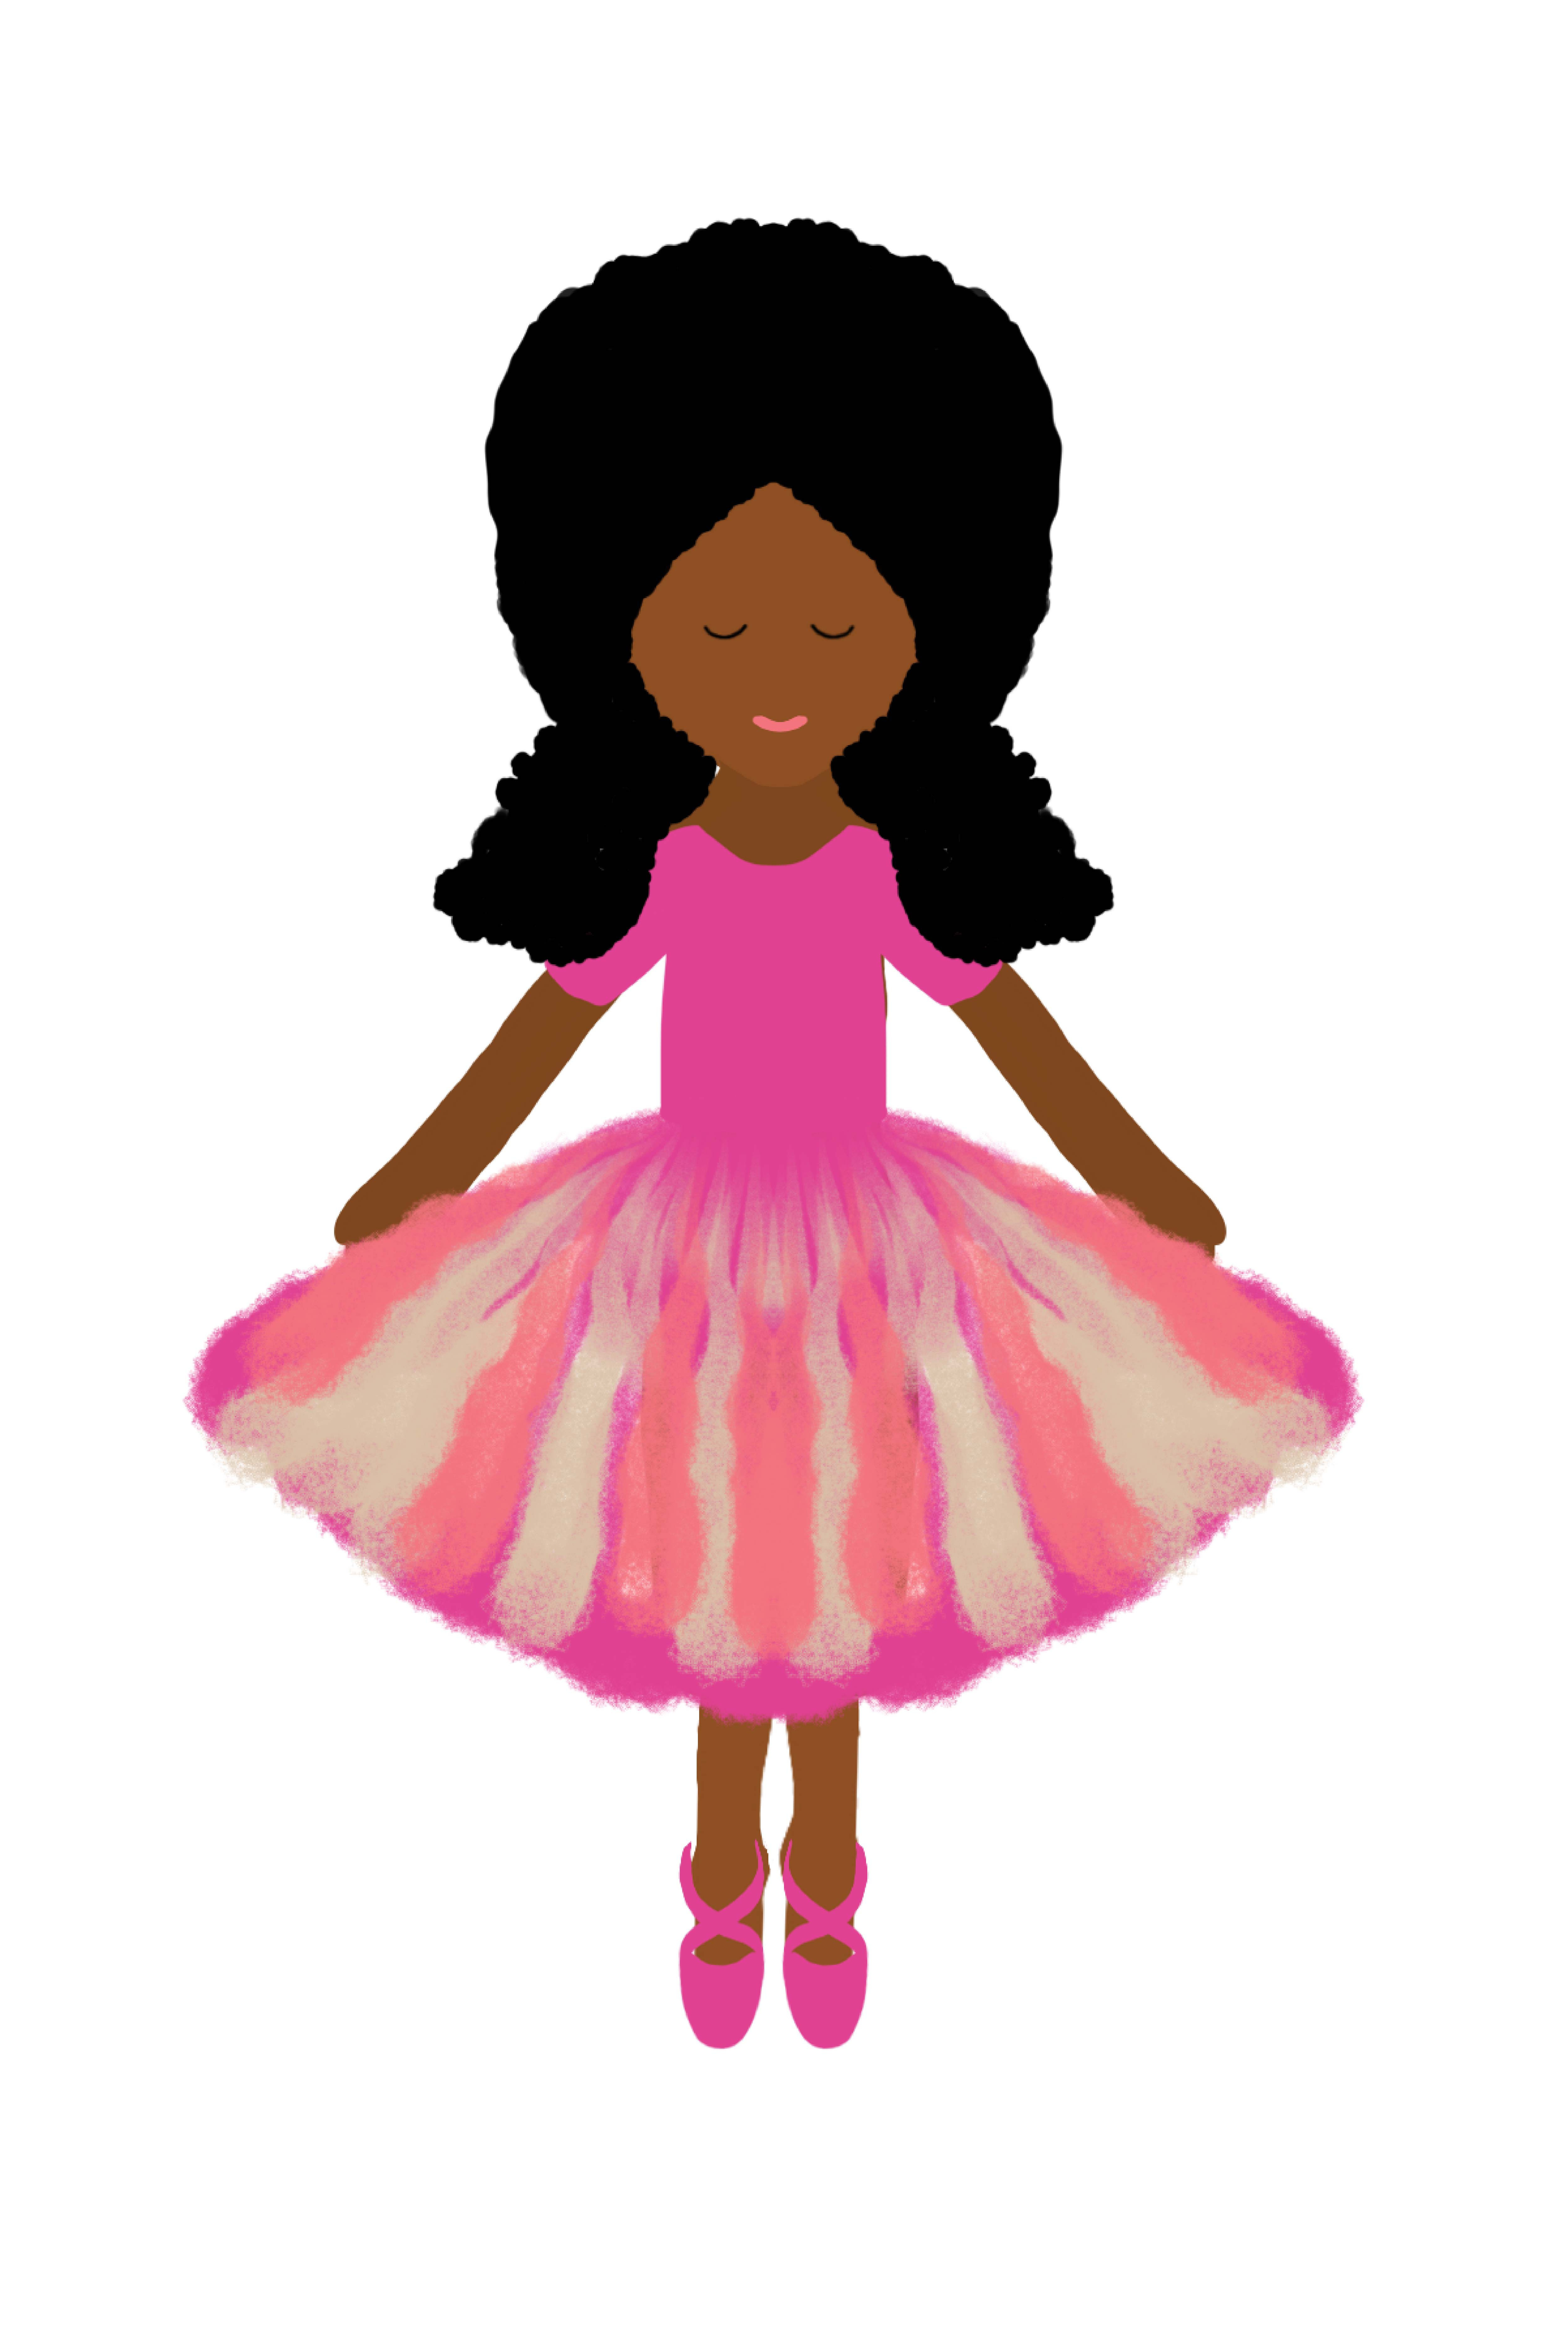 Character Illustrations for Plush Dolls - Boy and Girl(African American)